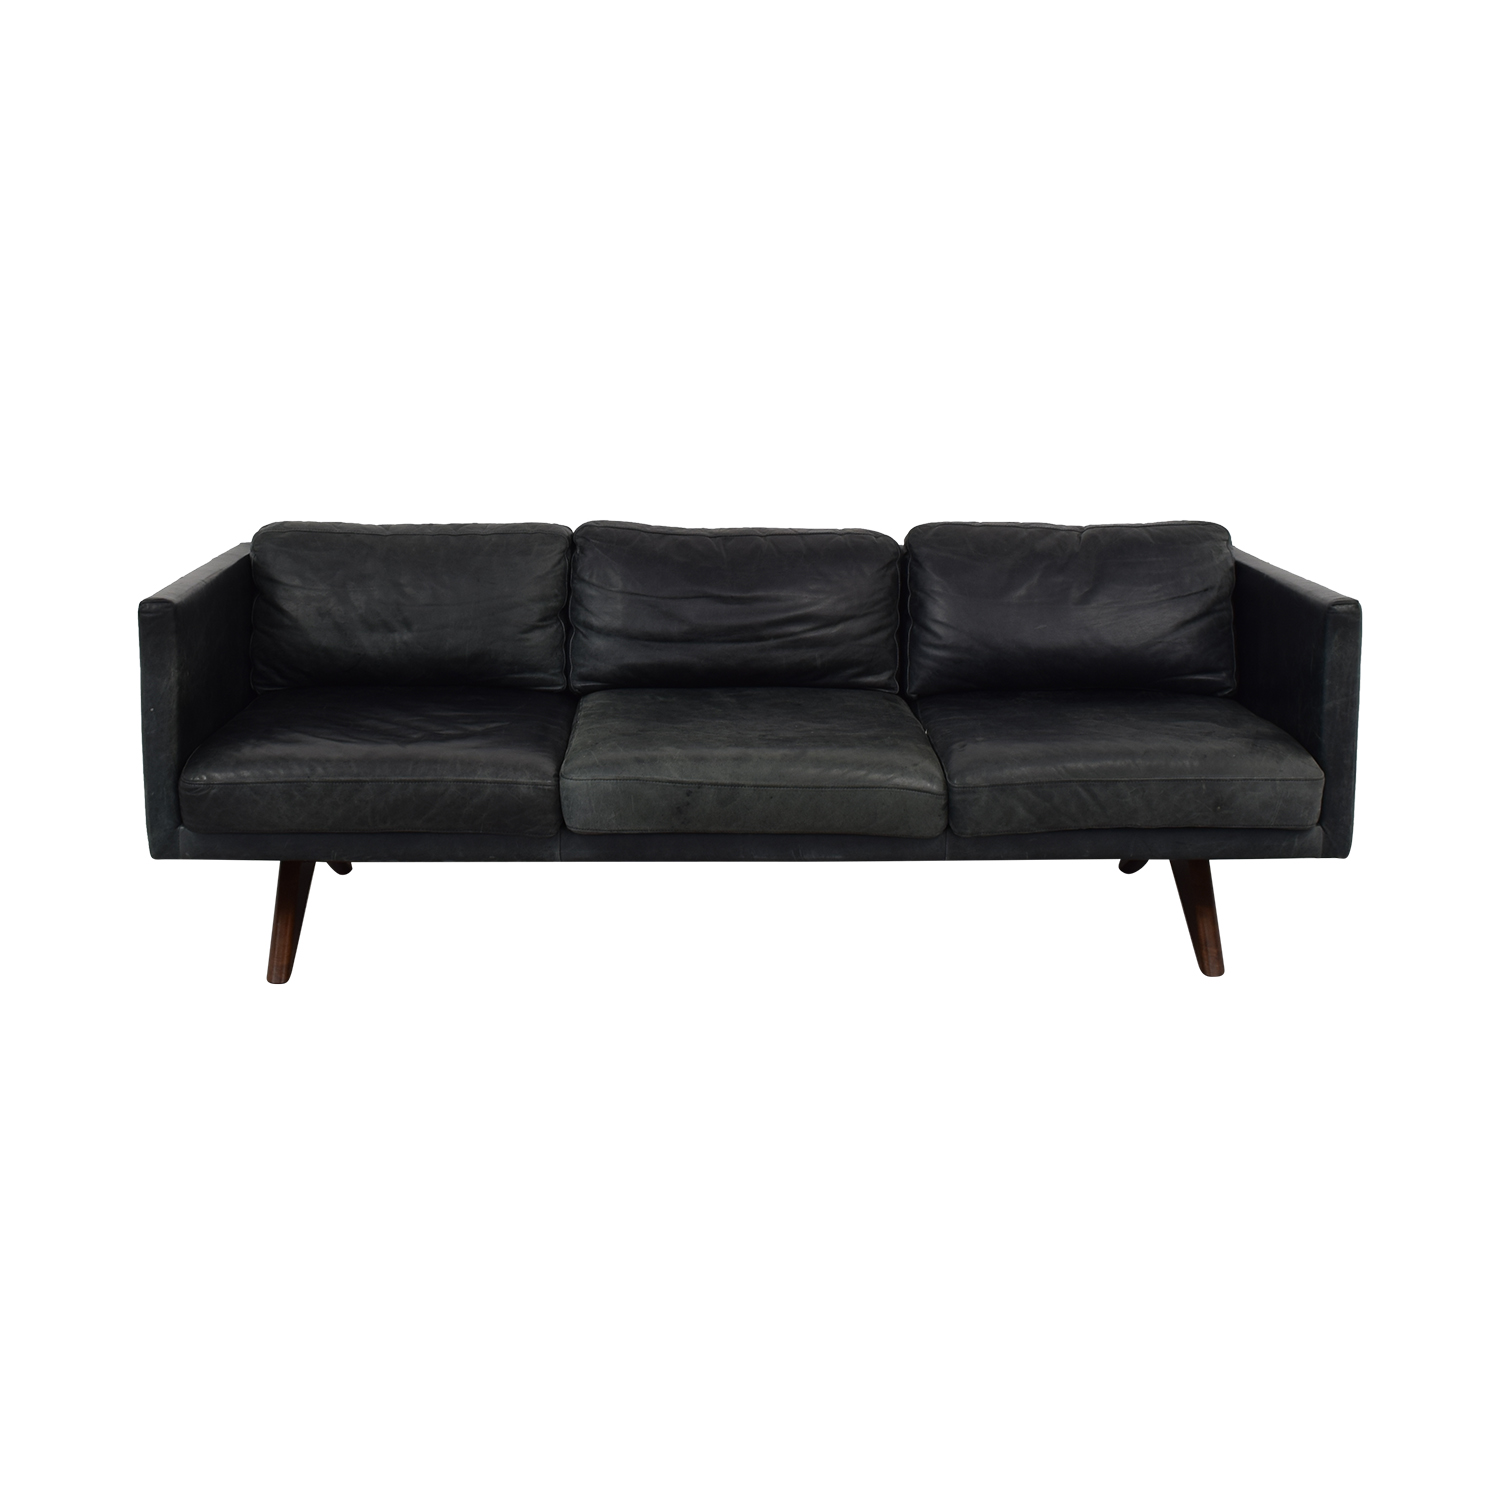 West Elm West Elm Brooklyn Leather Sofa second hand